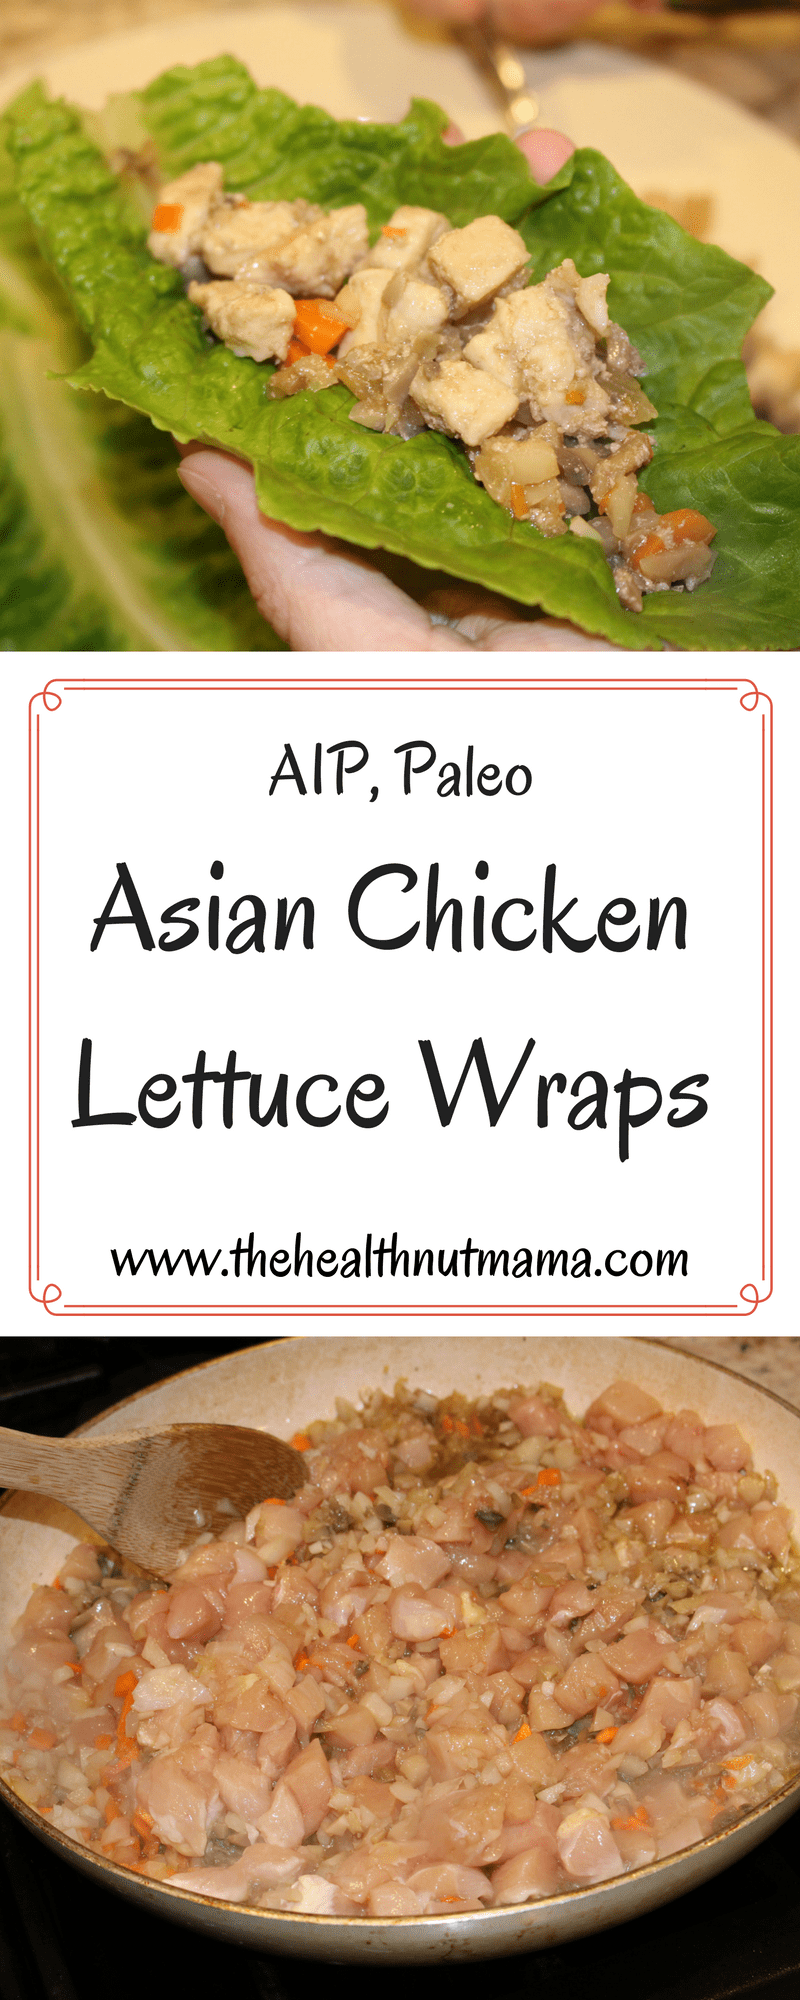 Paleo AIP Asian Chicken Lettuce Wraps - Quick, Easy & Delicious!- www.thehealthnutmama.com